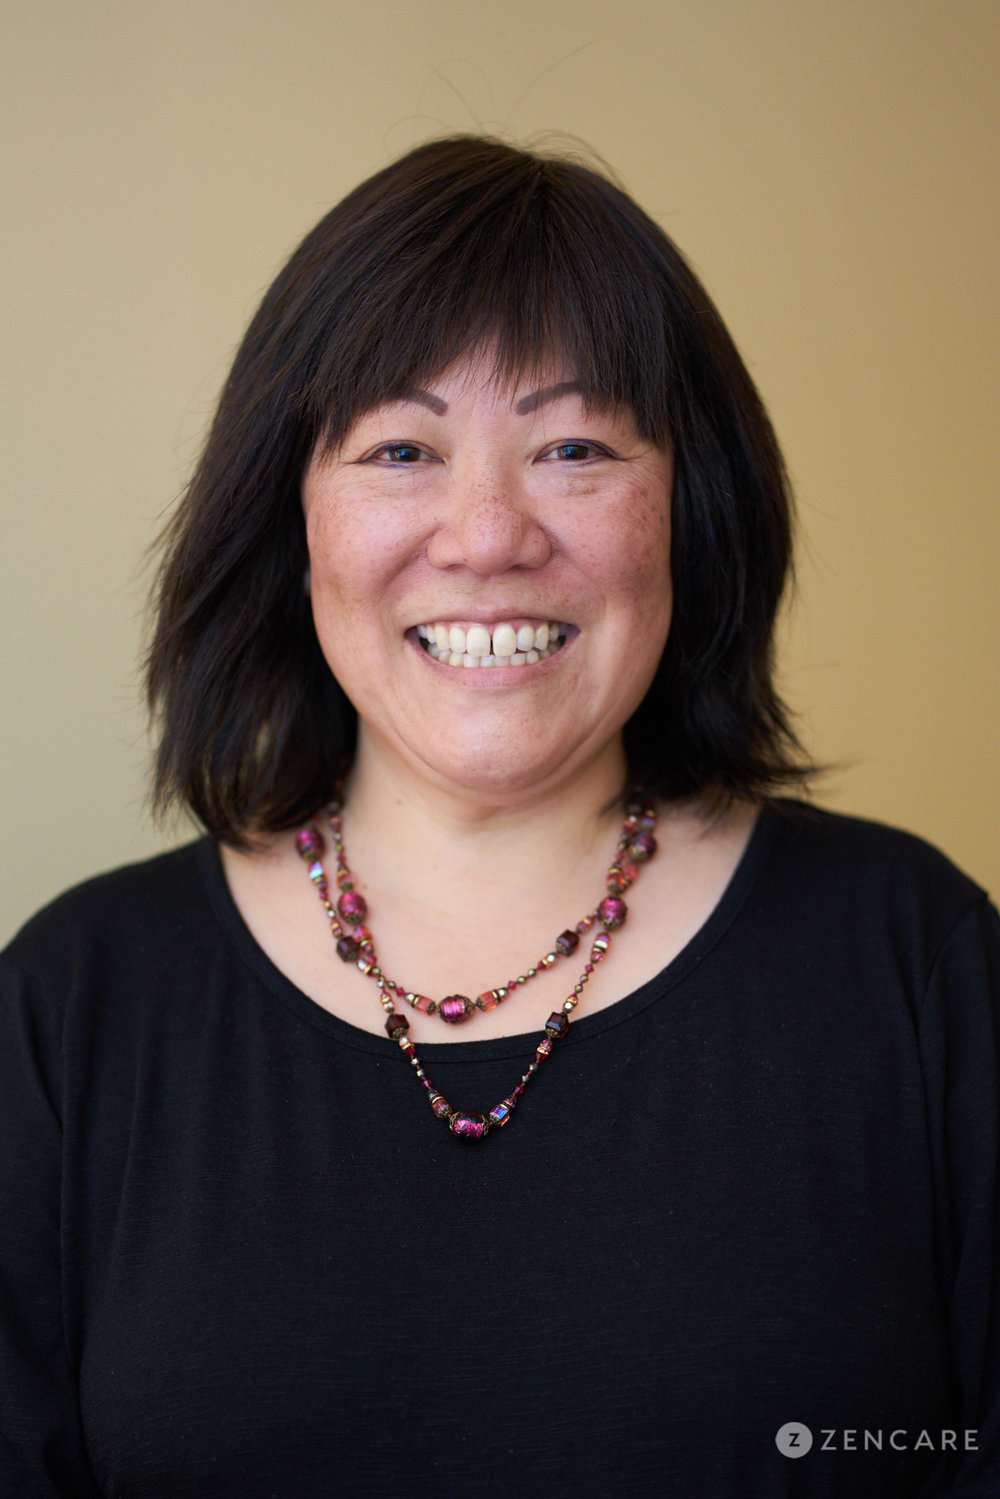 Dana Oshiro LICSW - Therapist in Lexington MA - 3.jpg